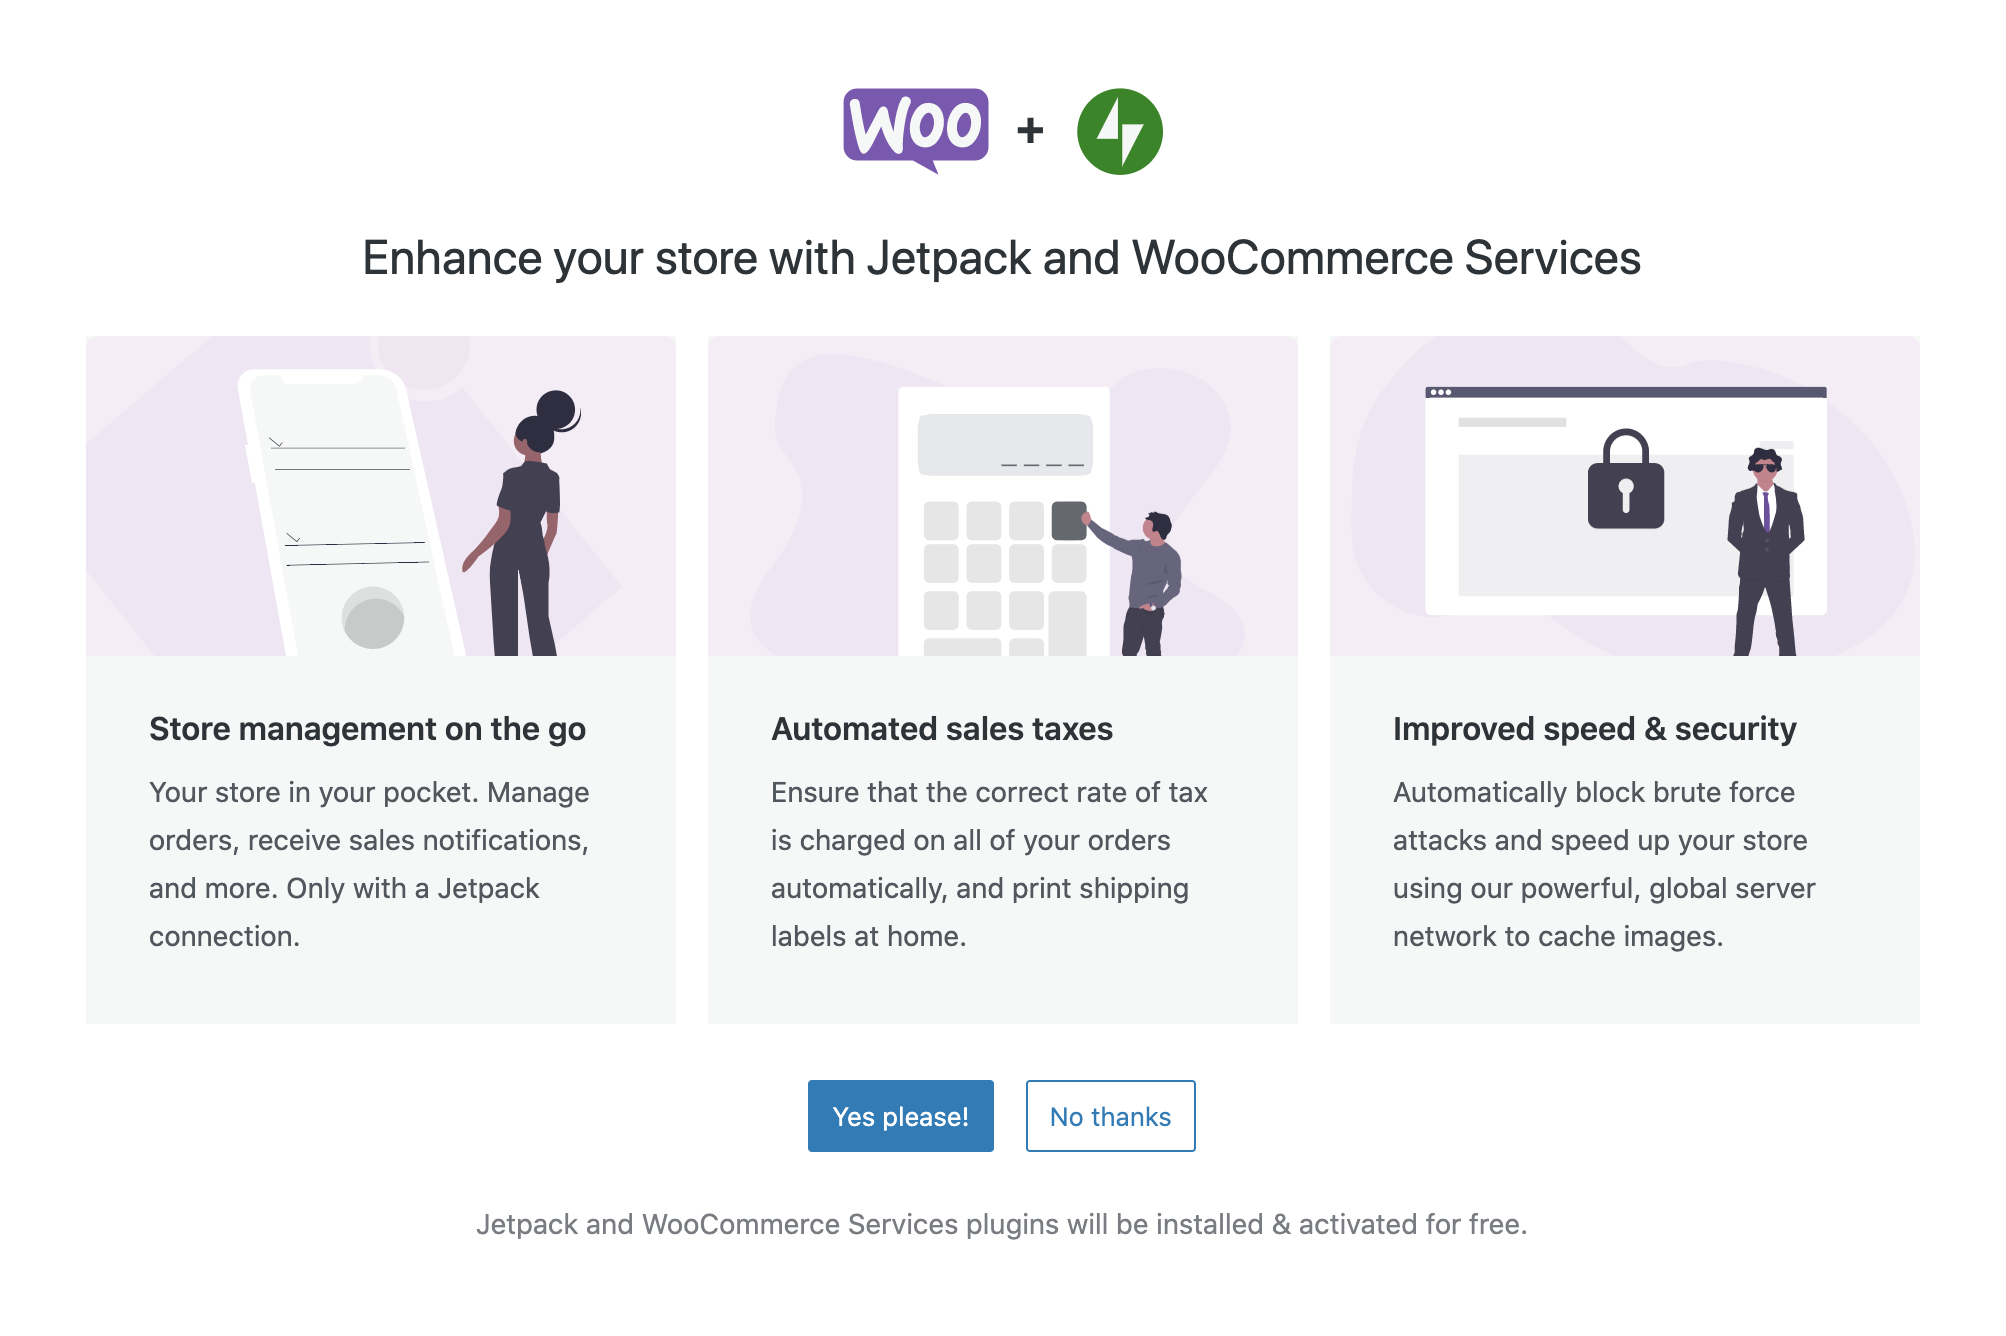 woocommerce and jetpack set up